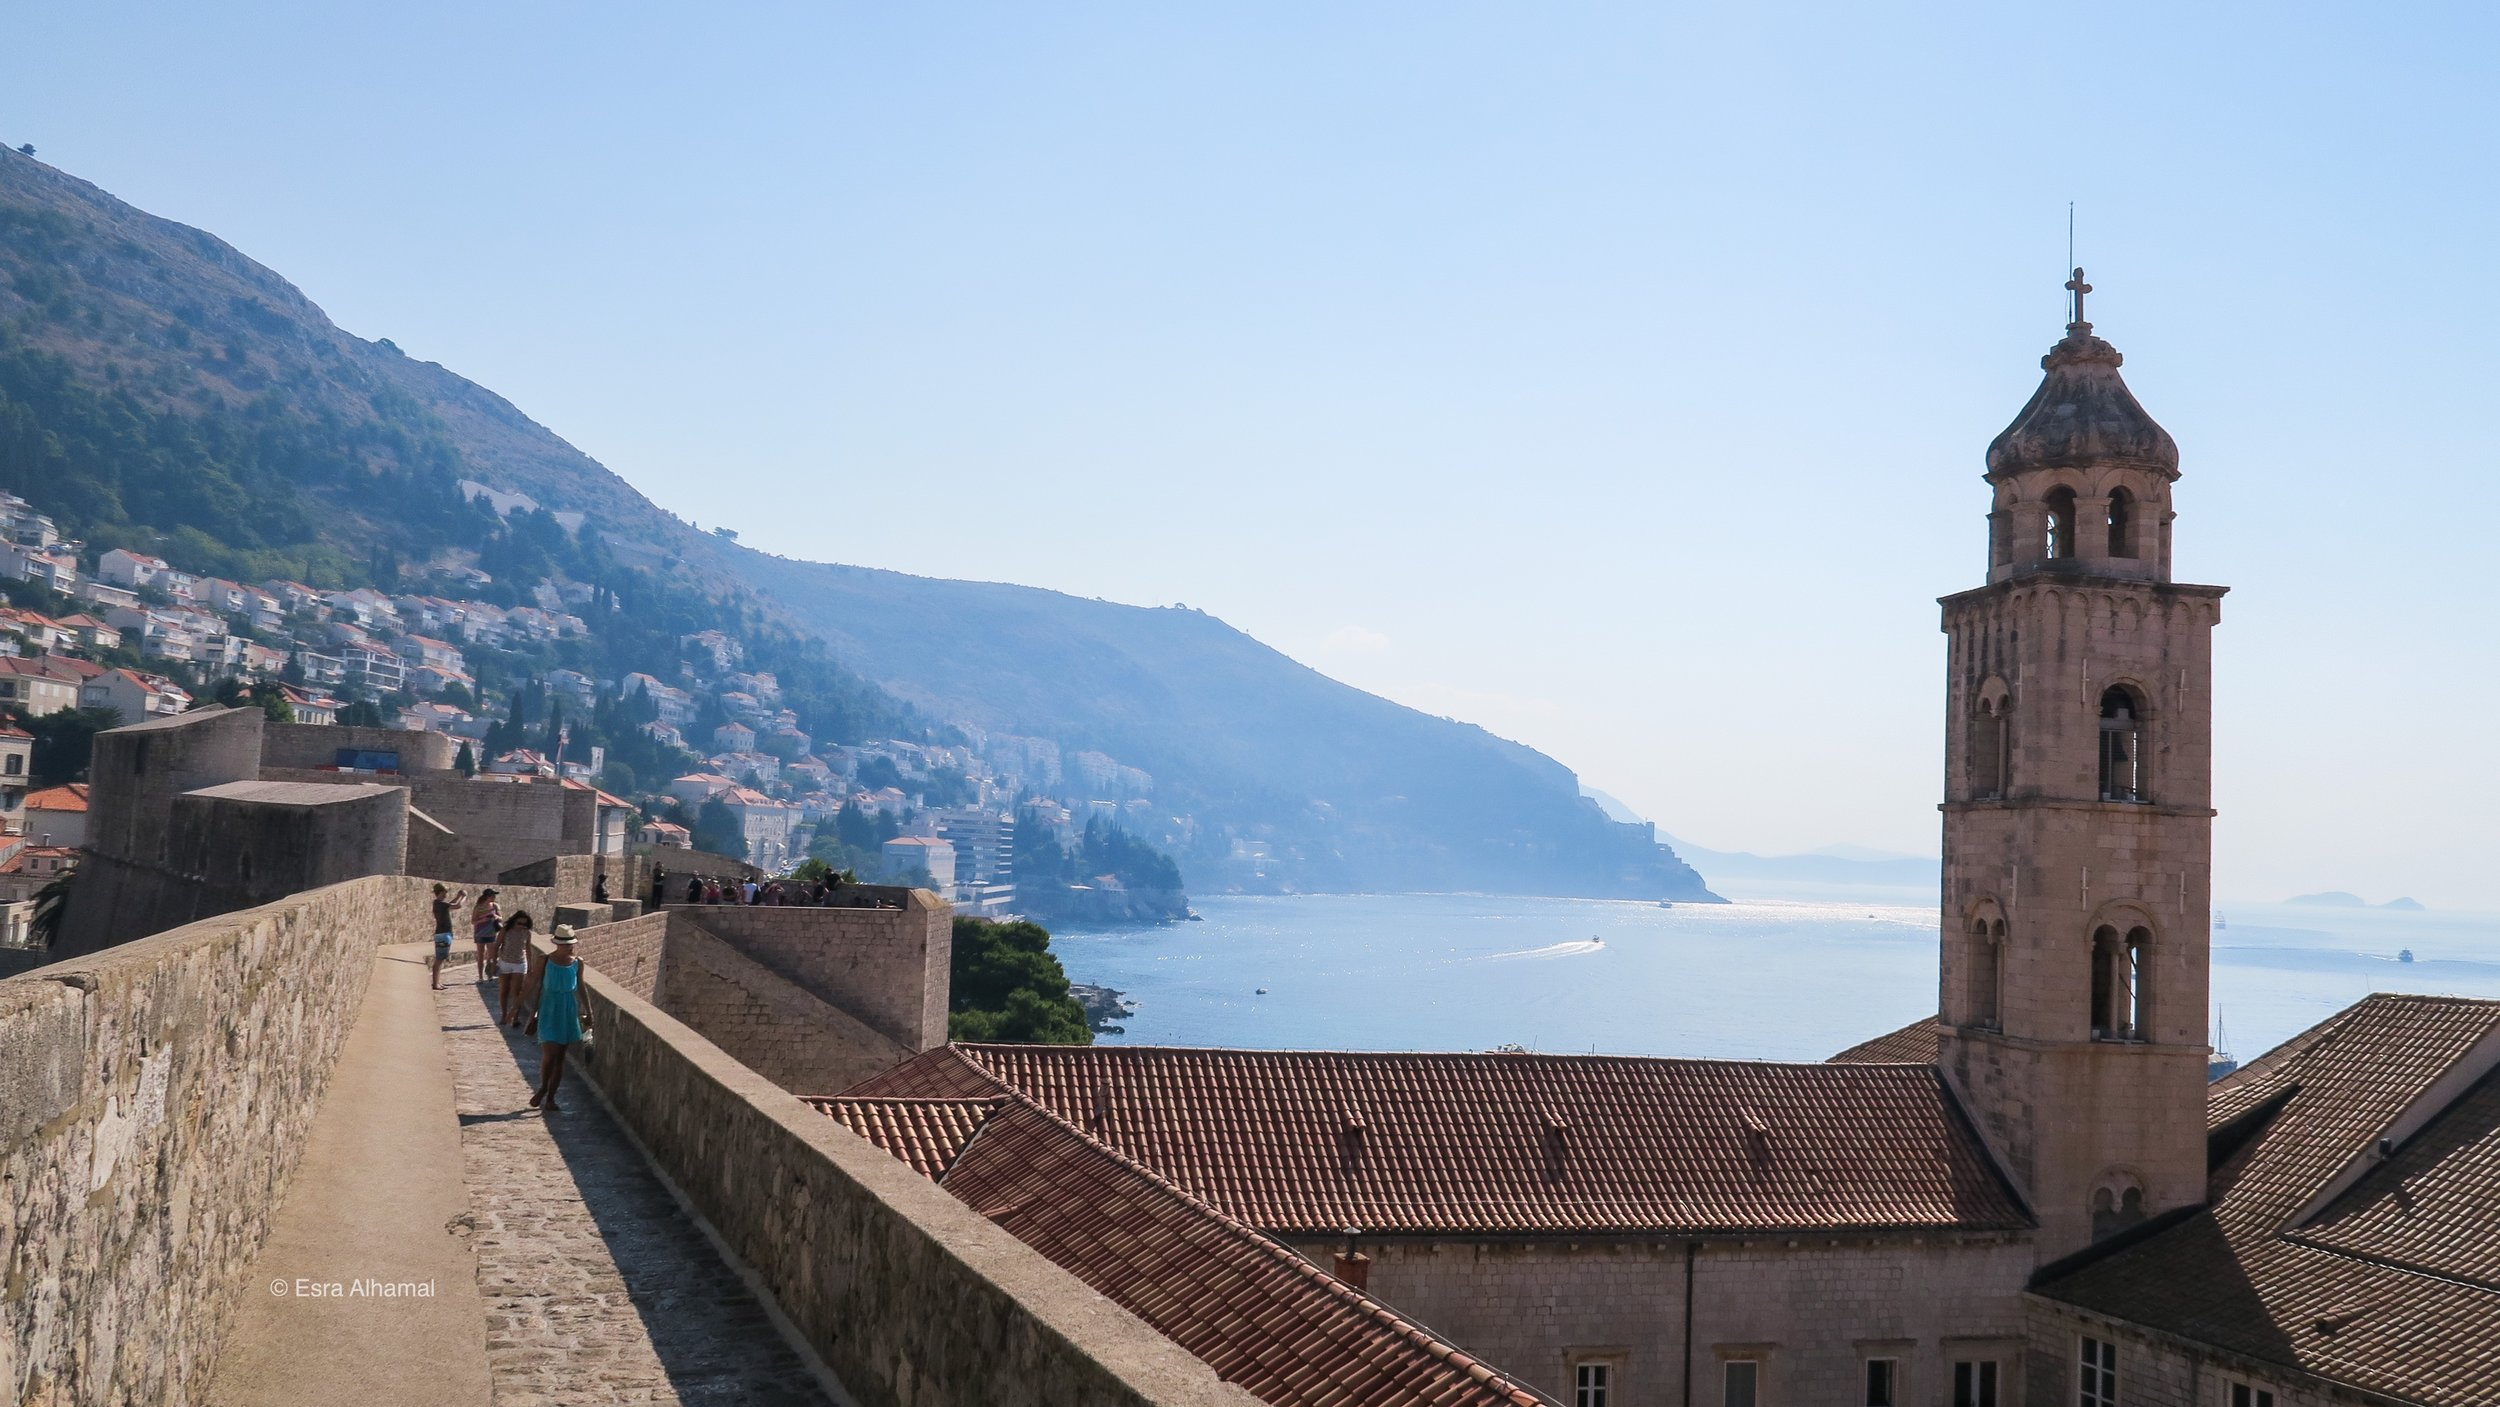 View from the city wall walk in Dubrovnik